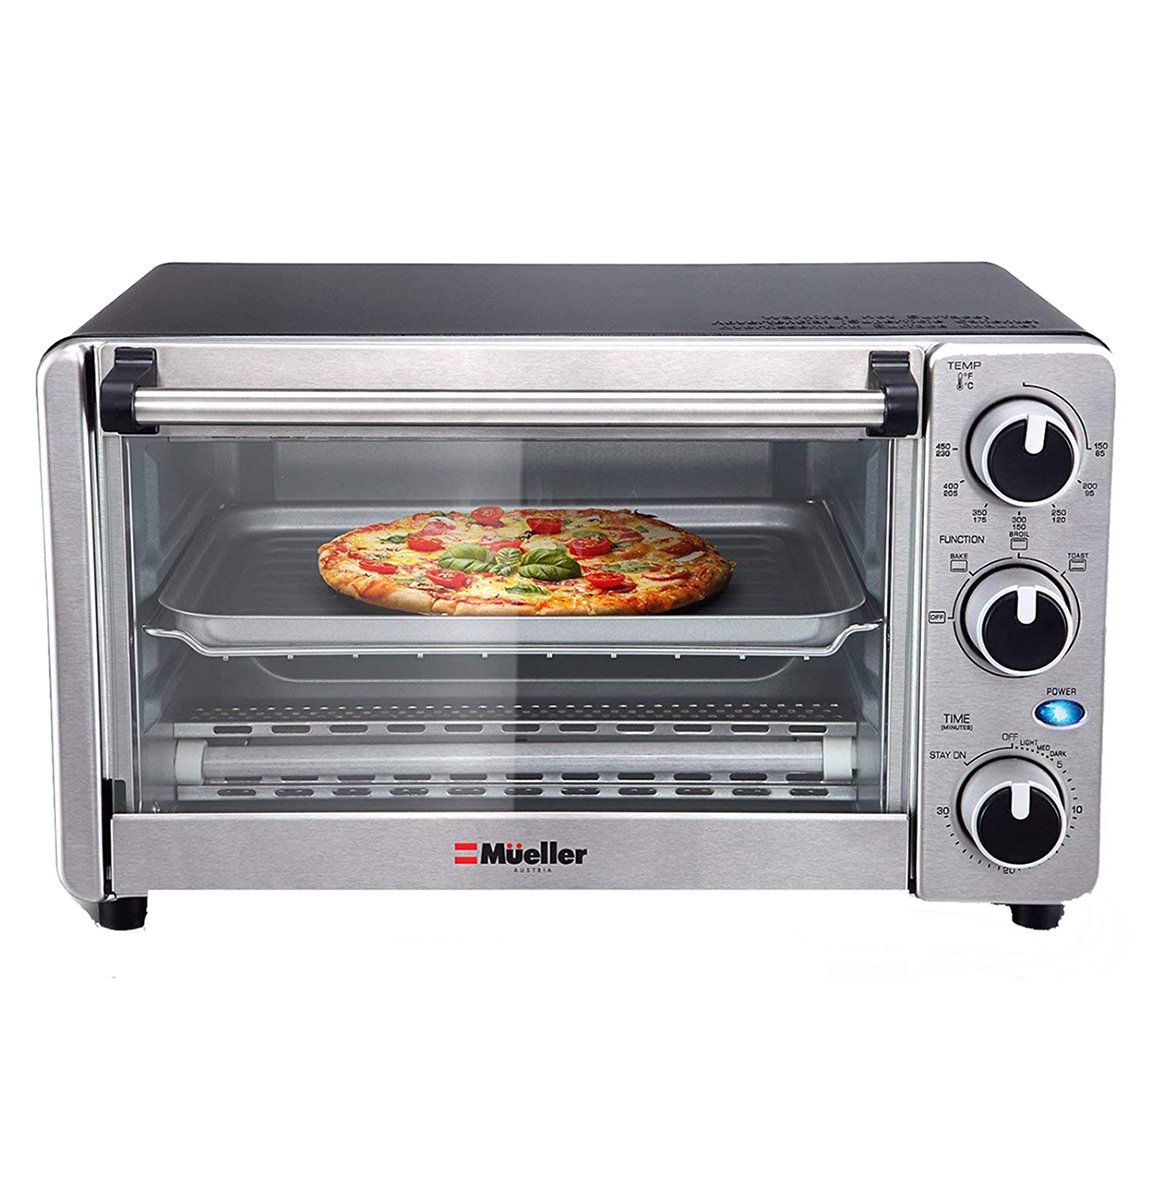 The 10 Best Toaster Ovens According To Customer Reviews Convection Toaster Oven Toaster Oven Reviews Toaster Oven